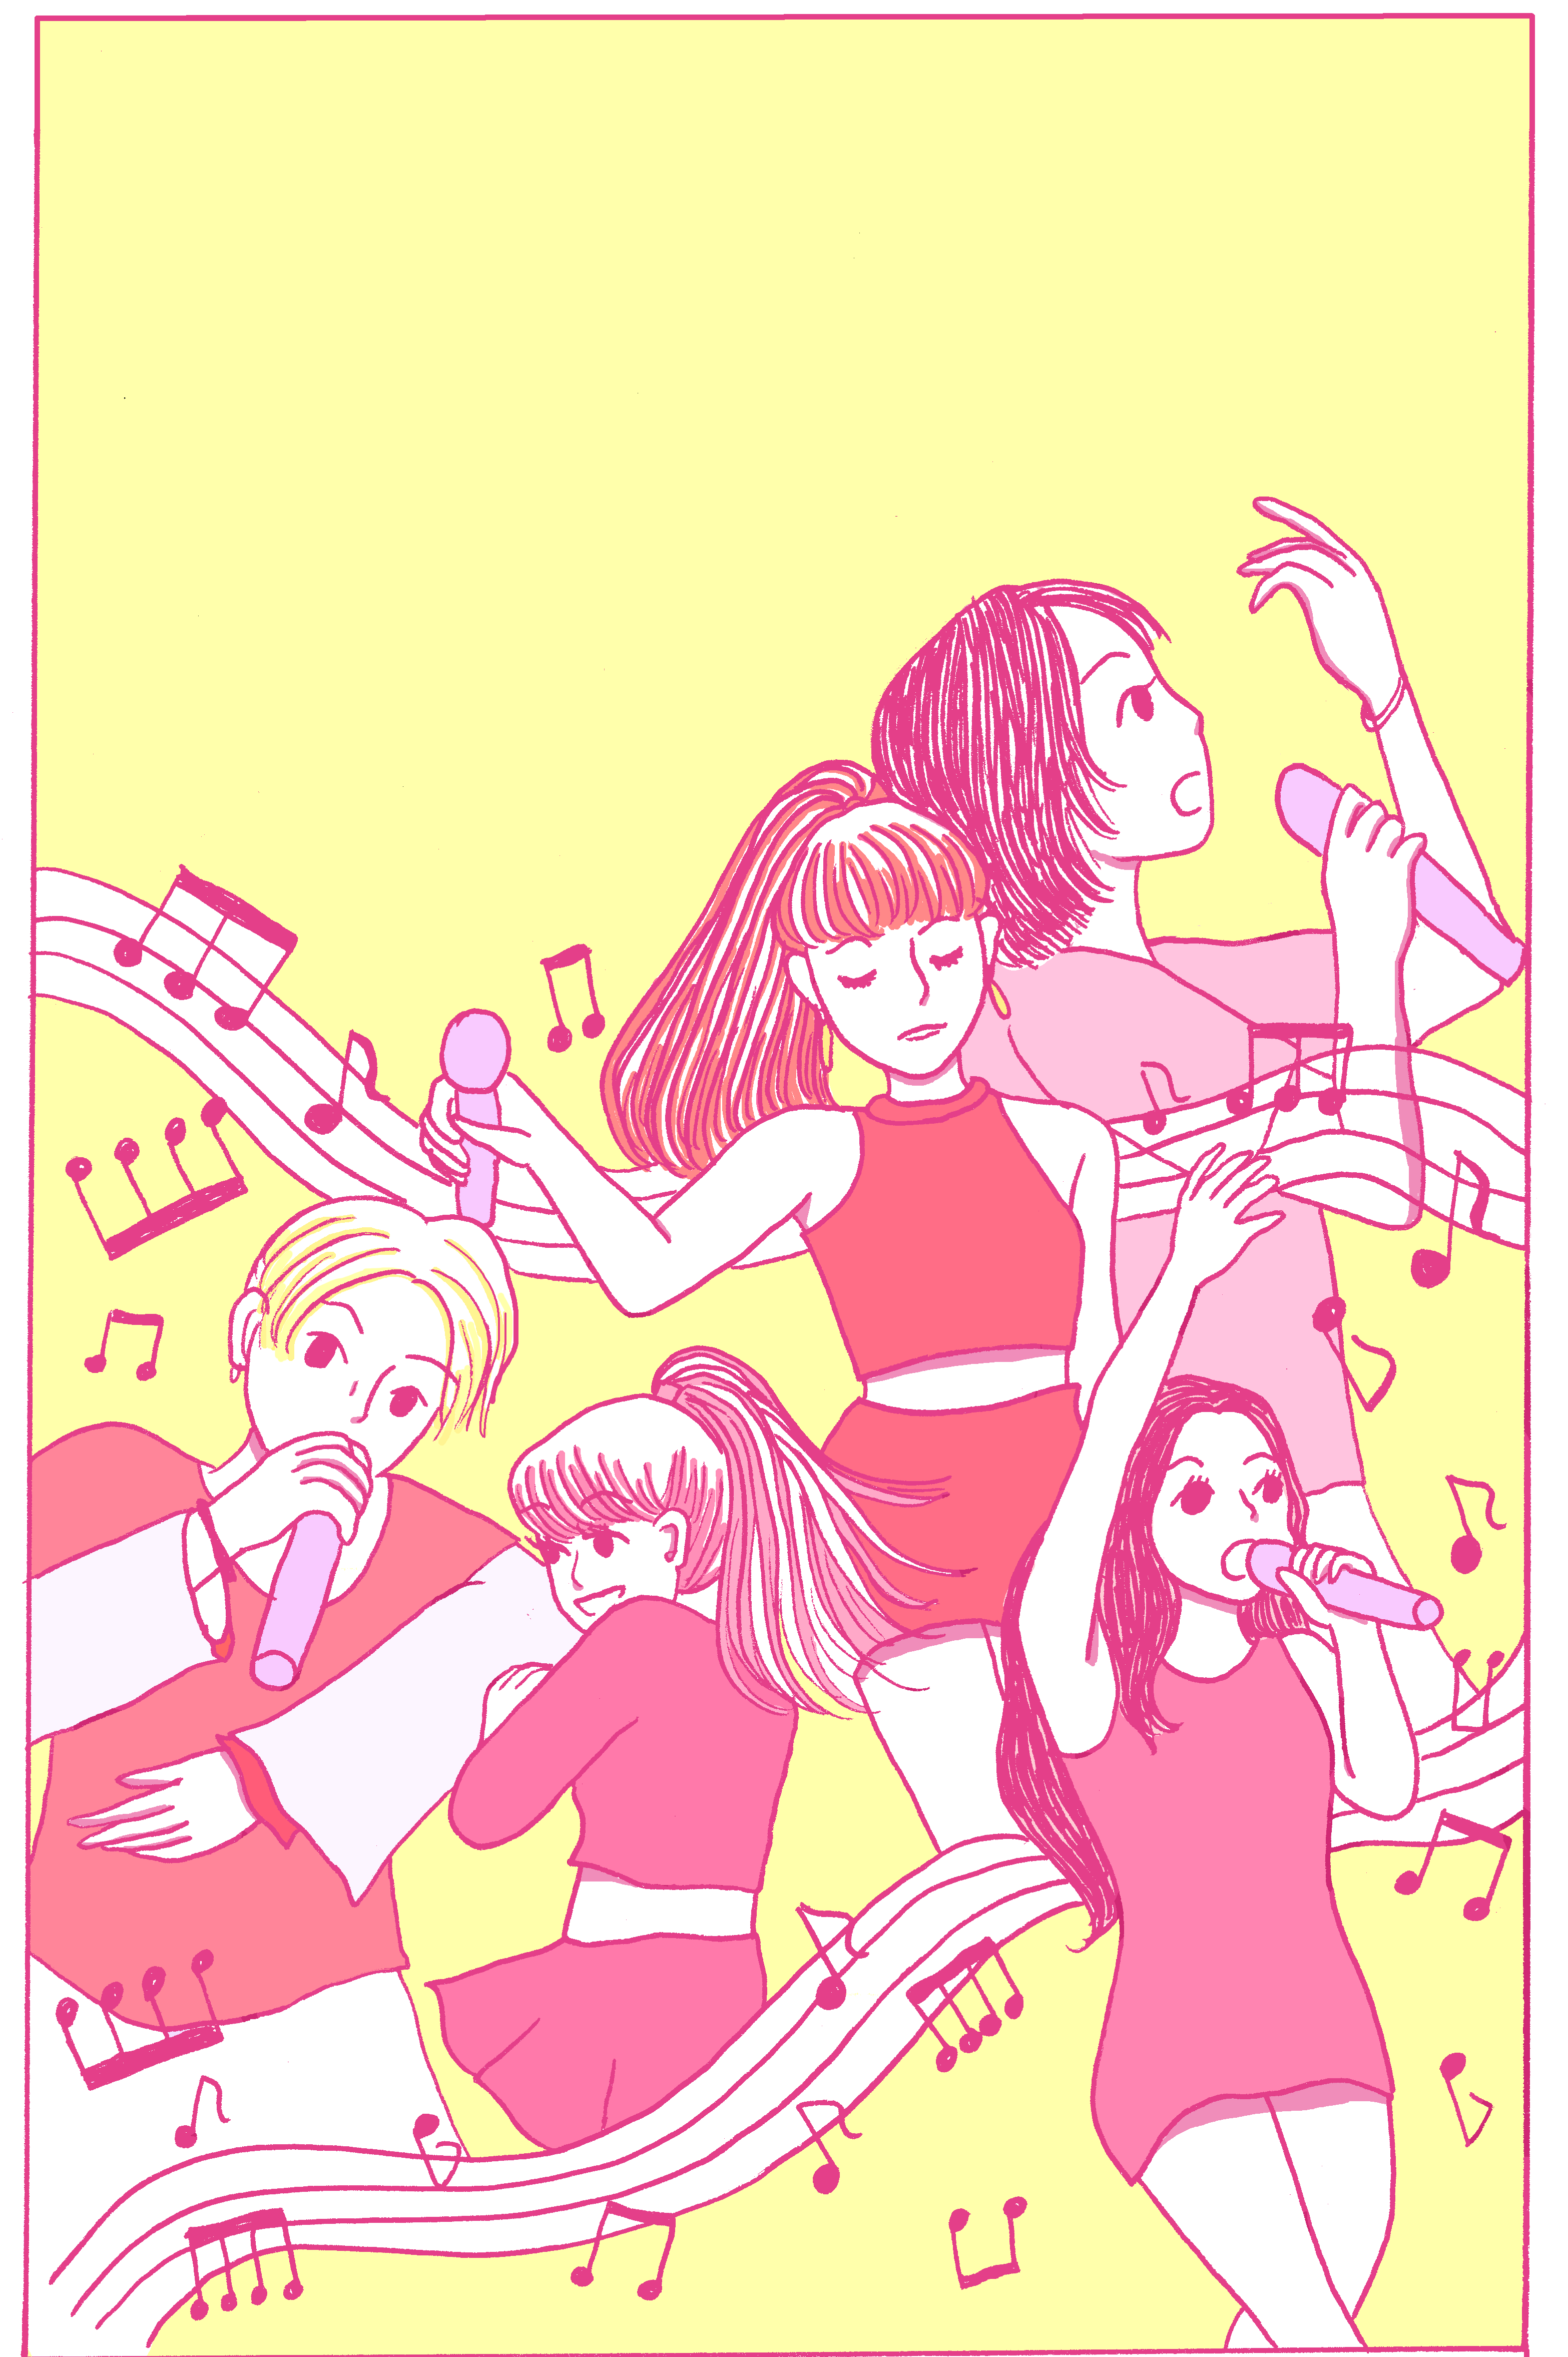 An illustration of a K-pop act.